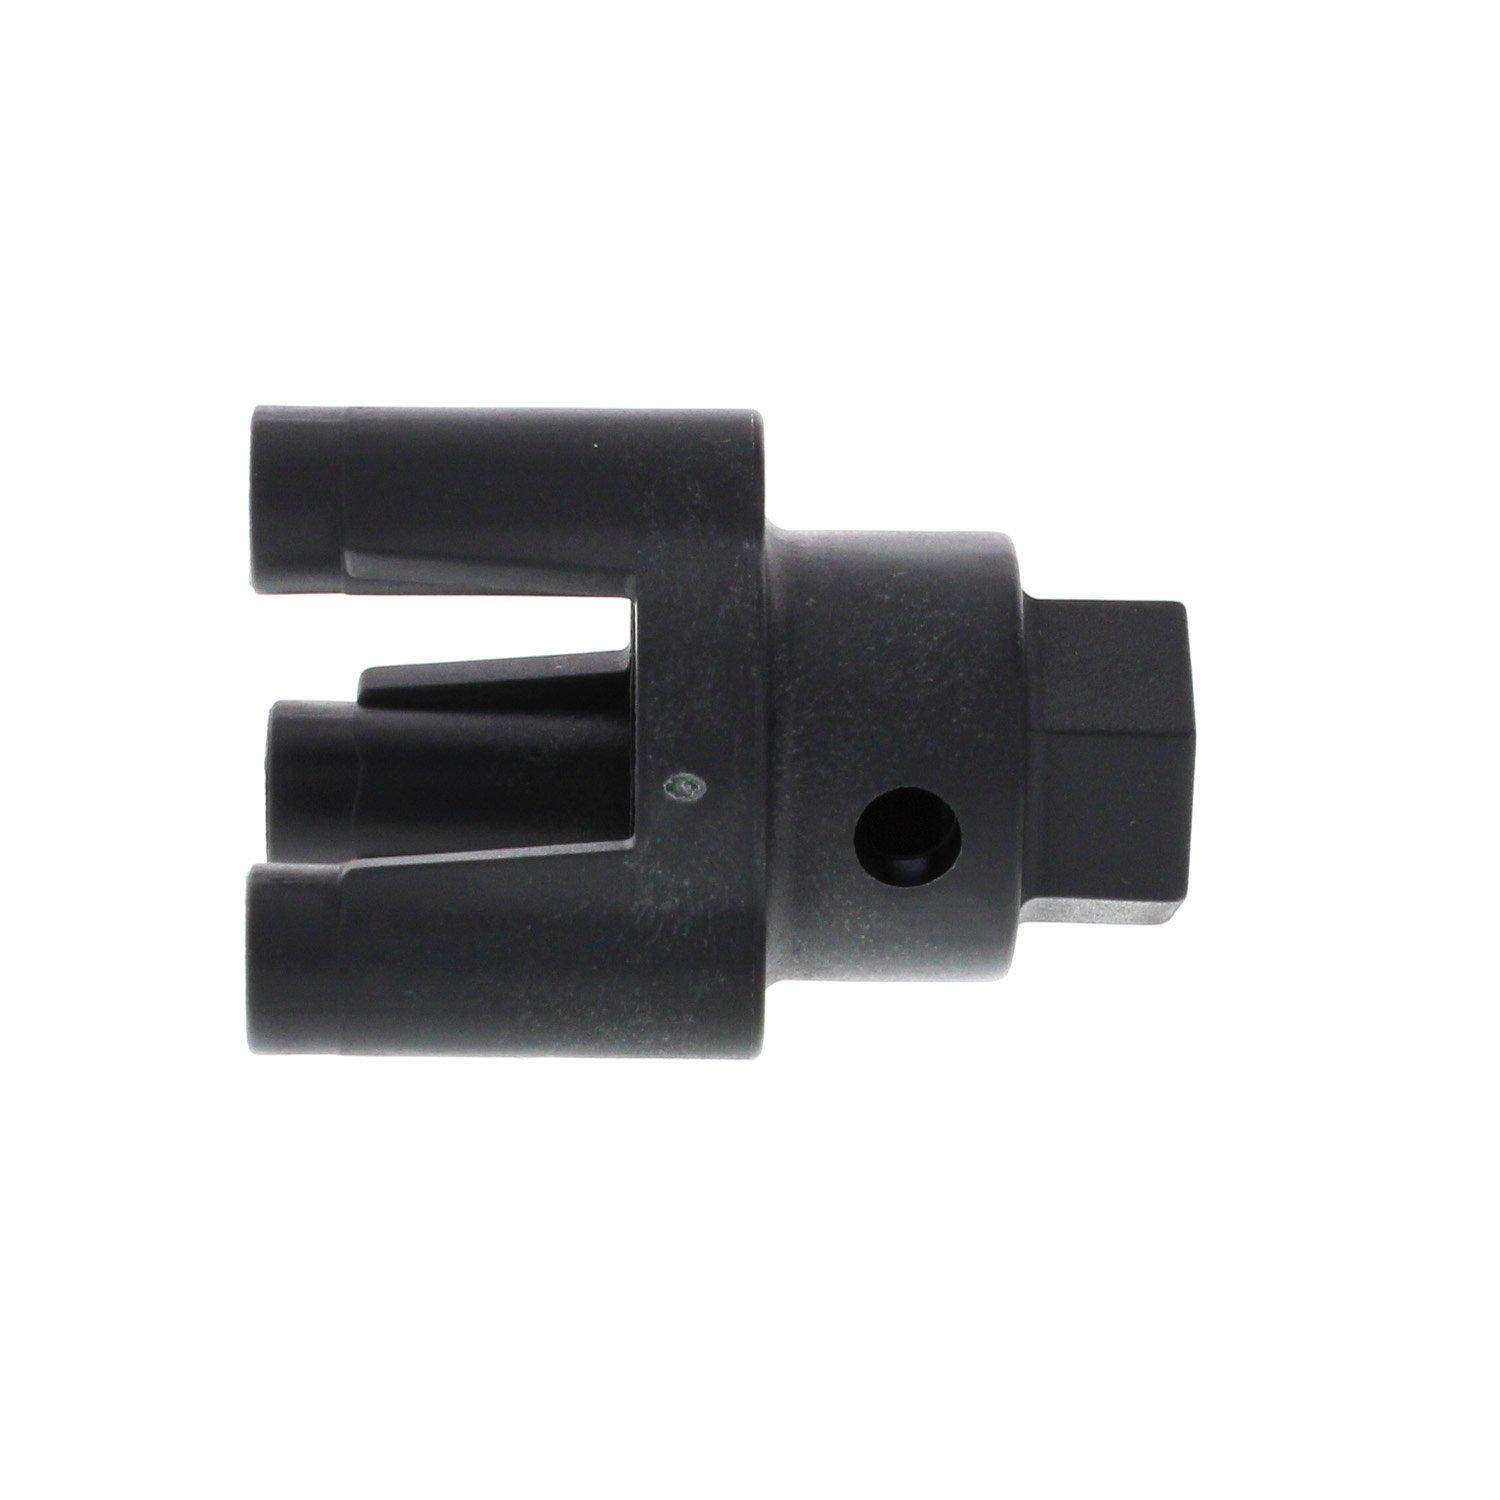 SAMMIC TURBINE LOCK KEY